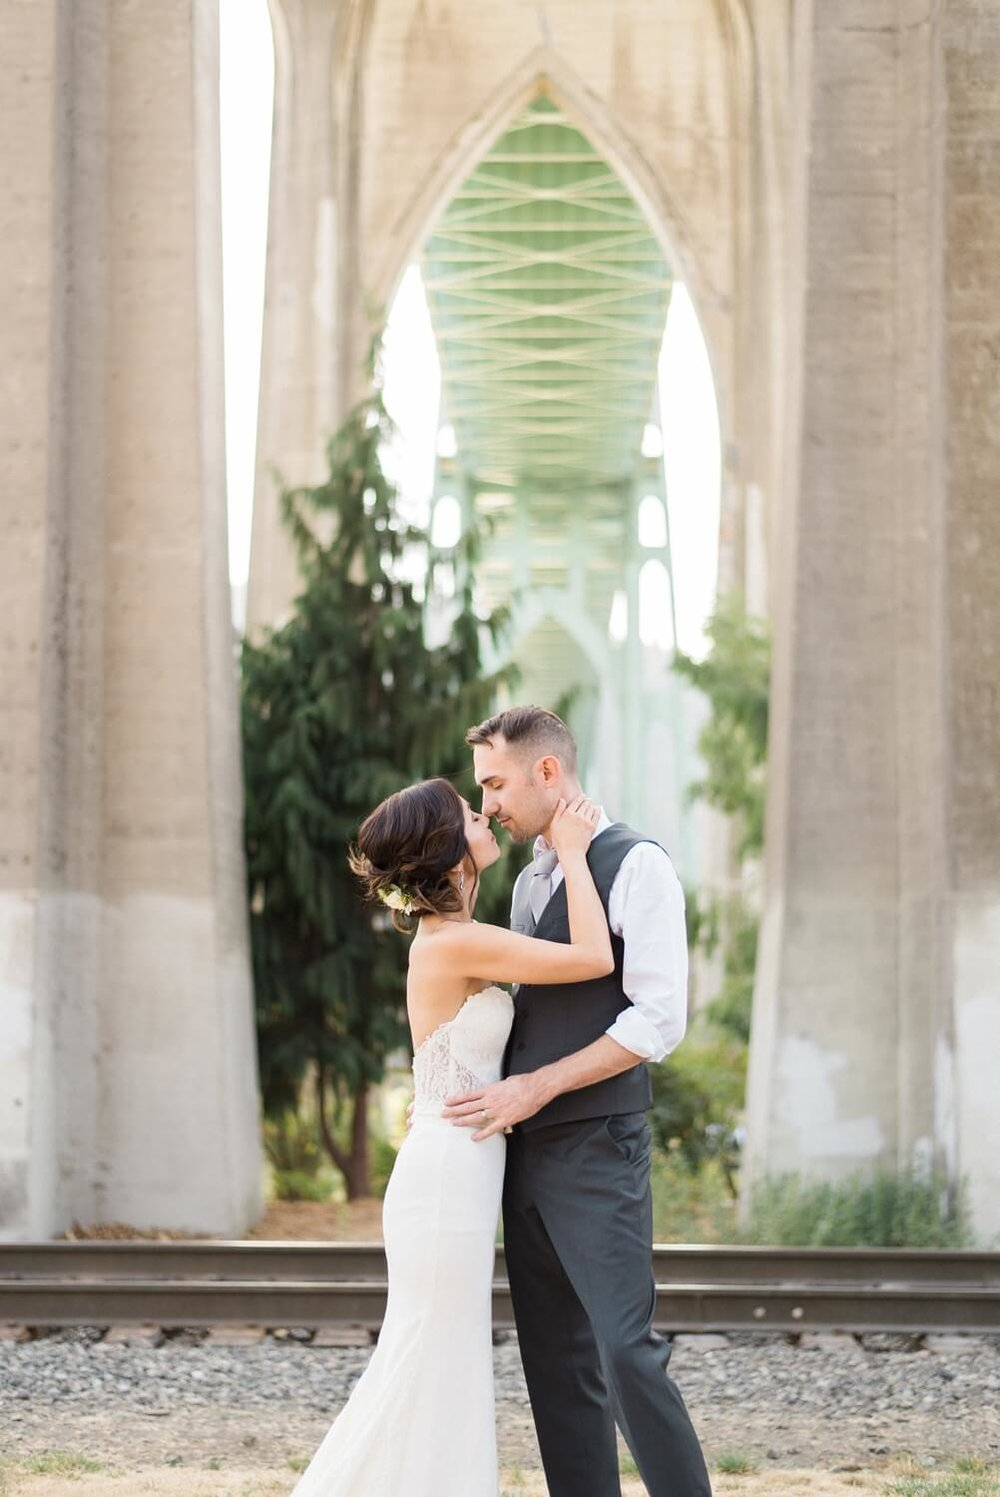 cathedral-park-wedding-urban-studio-portland-shelley-marie-photo-143_cr.jpg